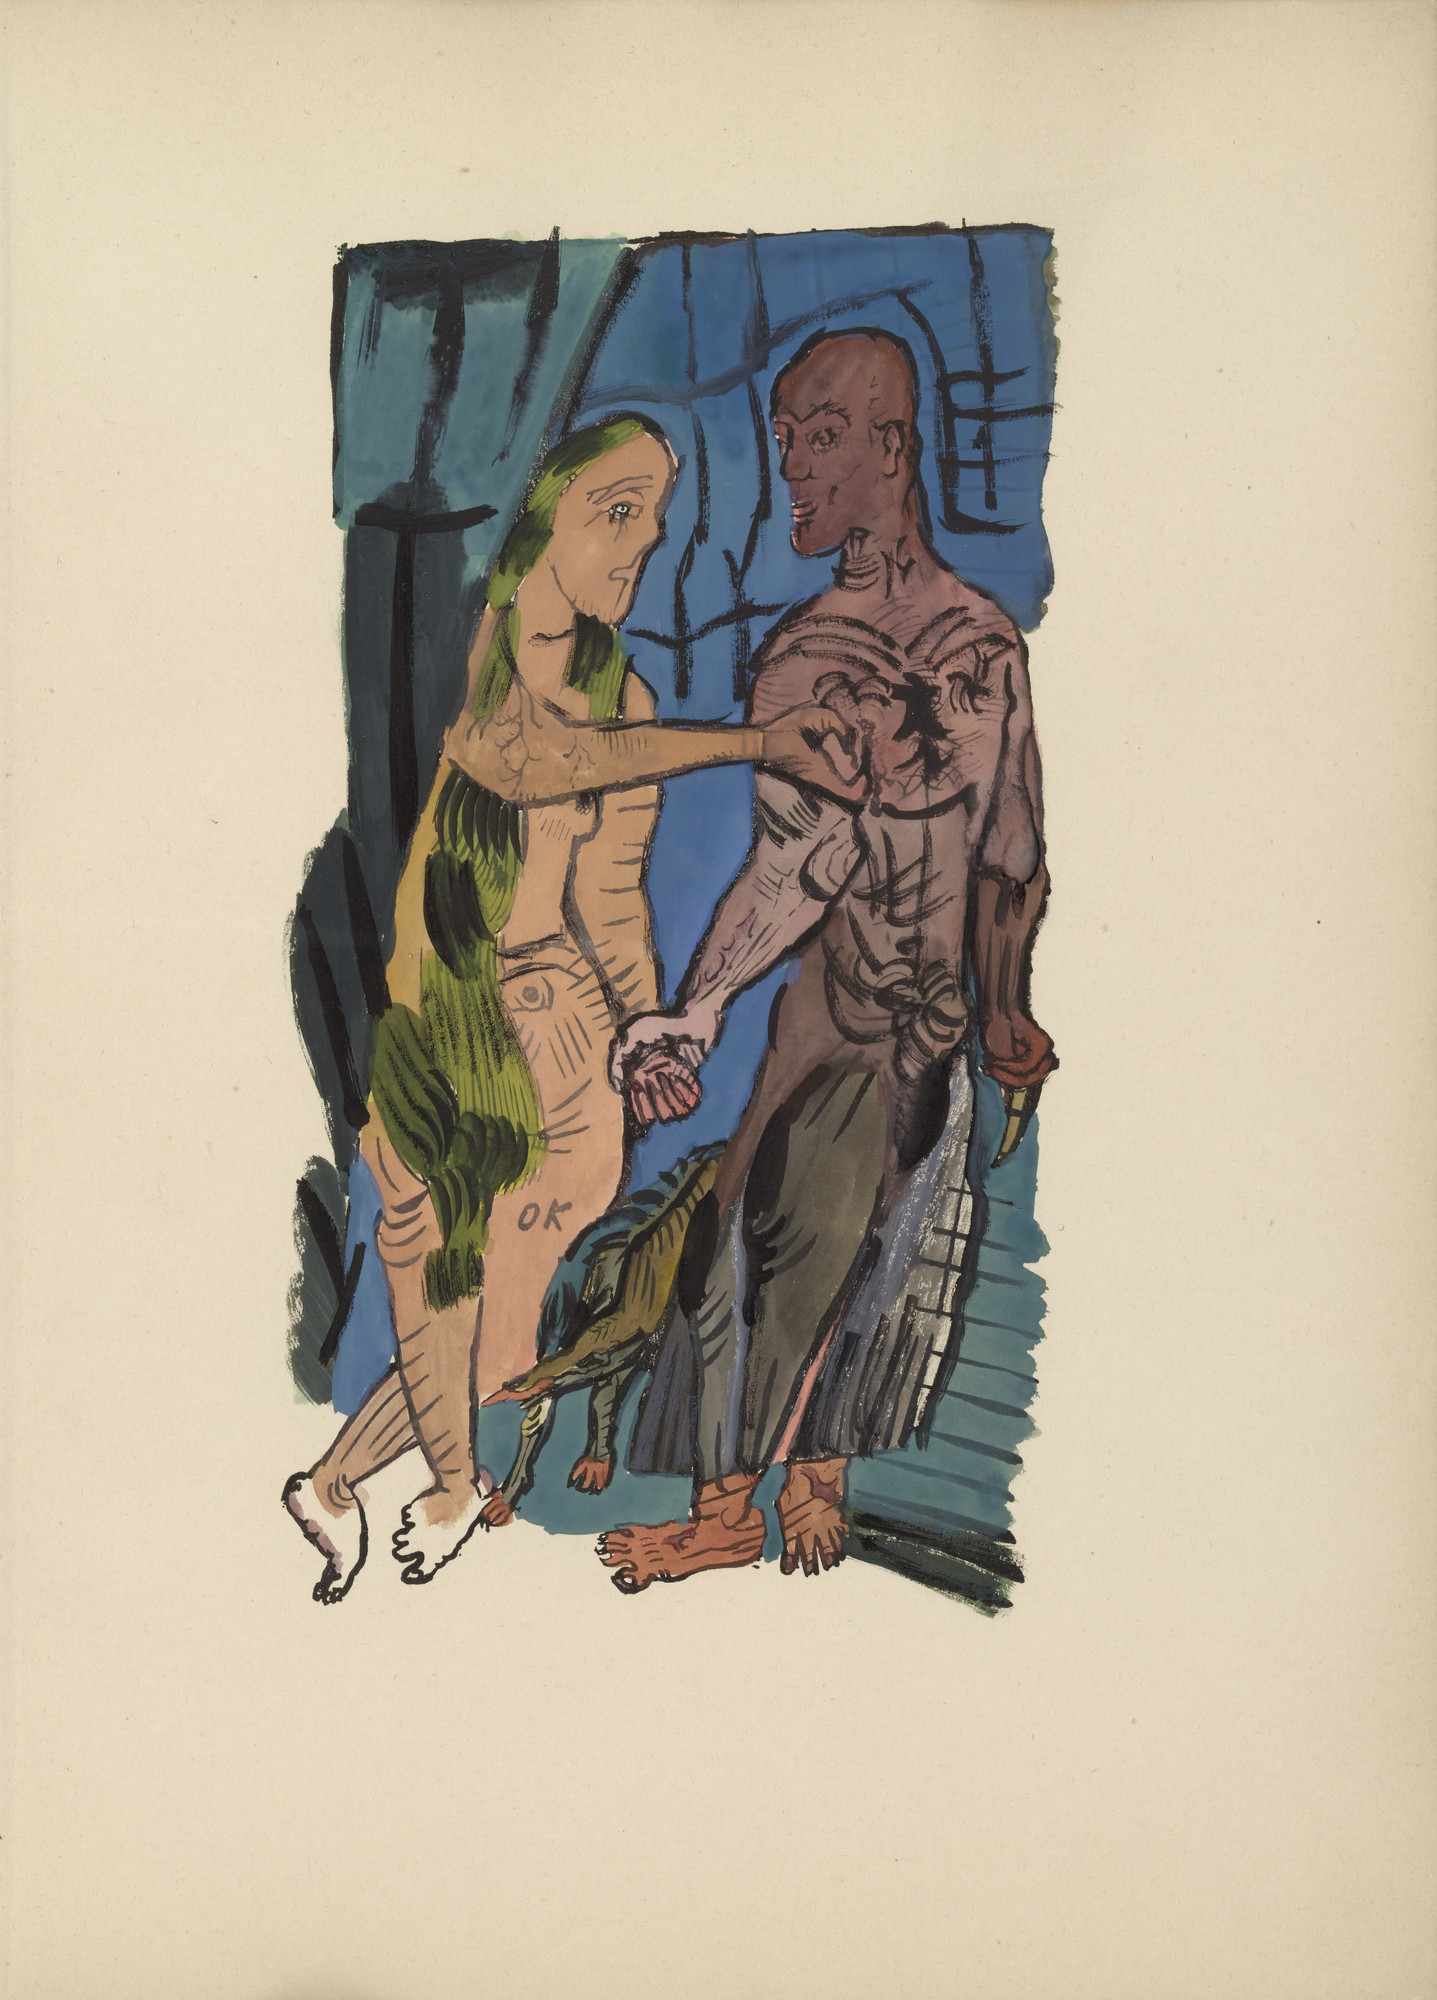 Oskar Kokoschka. Mörder, Hoffnung der Frauen (Murderer, Hope of Women). (1916, drawings executed 1910)